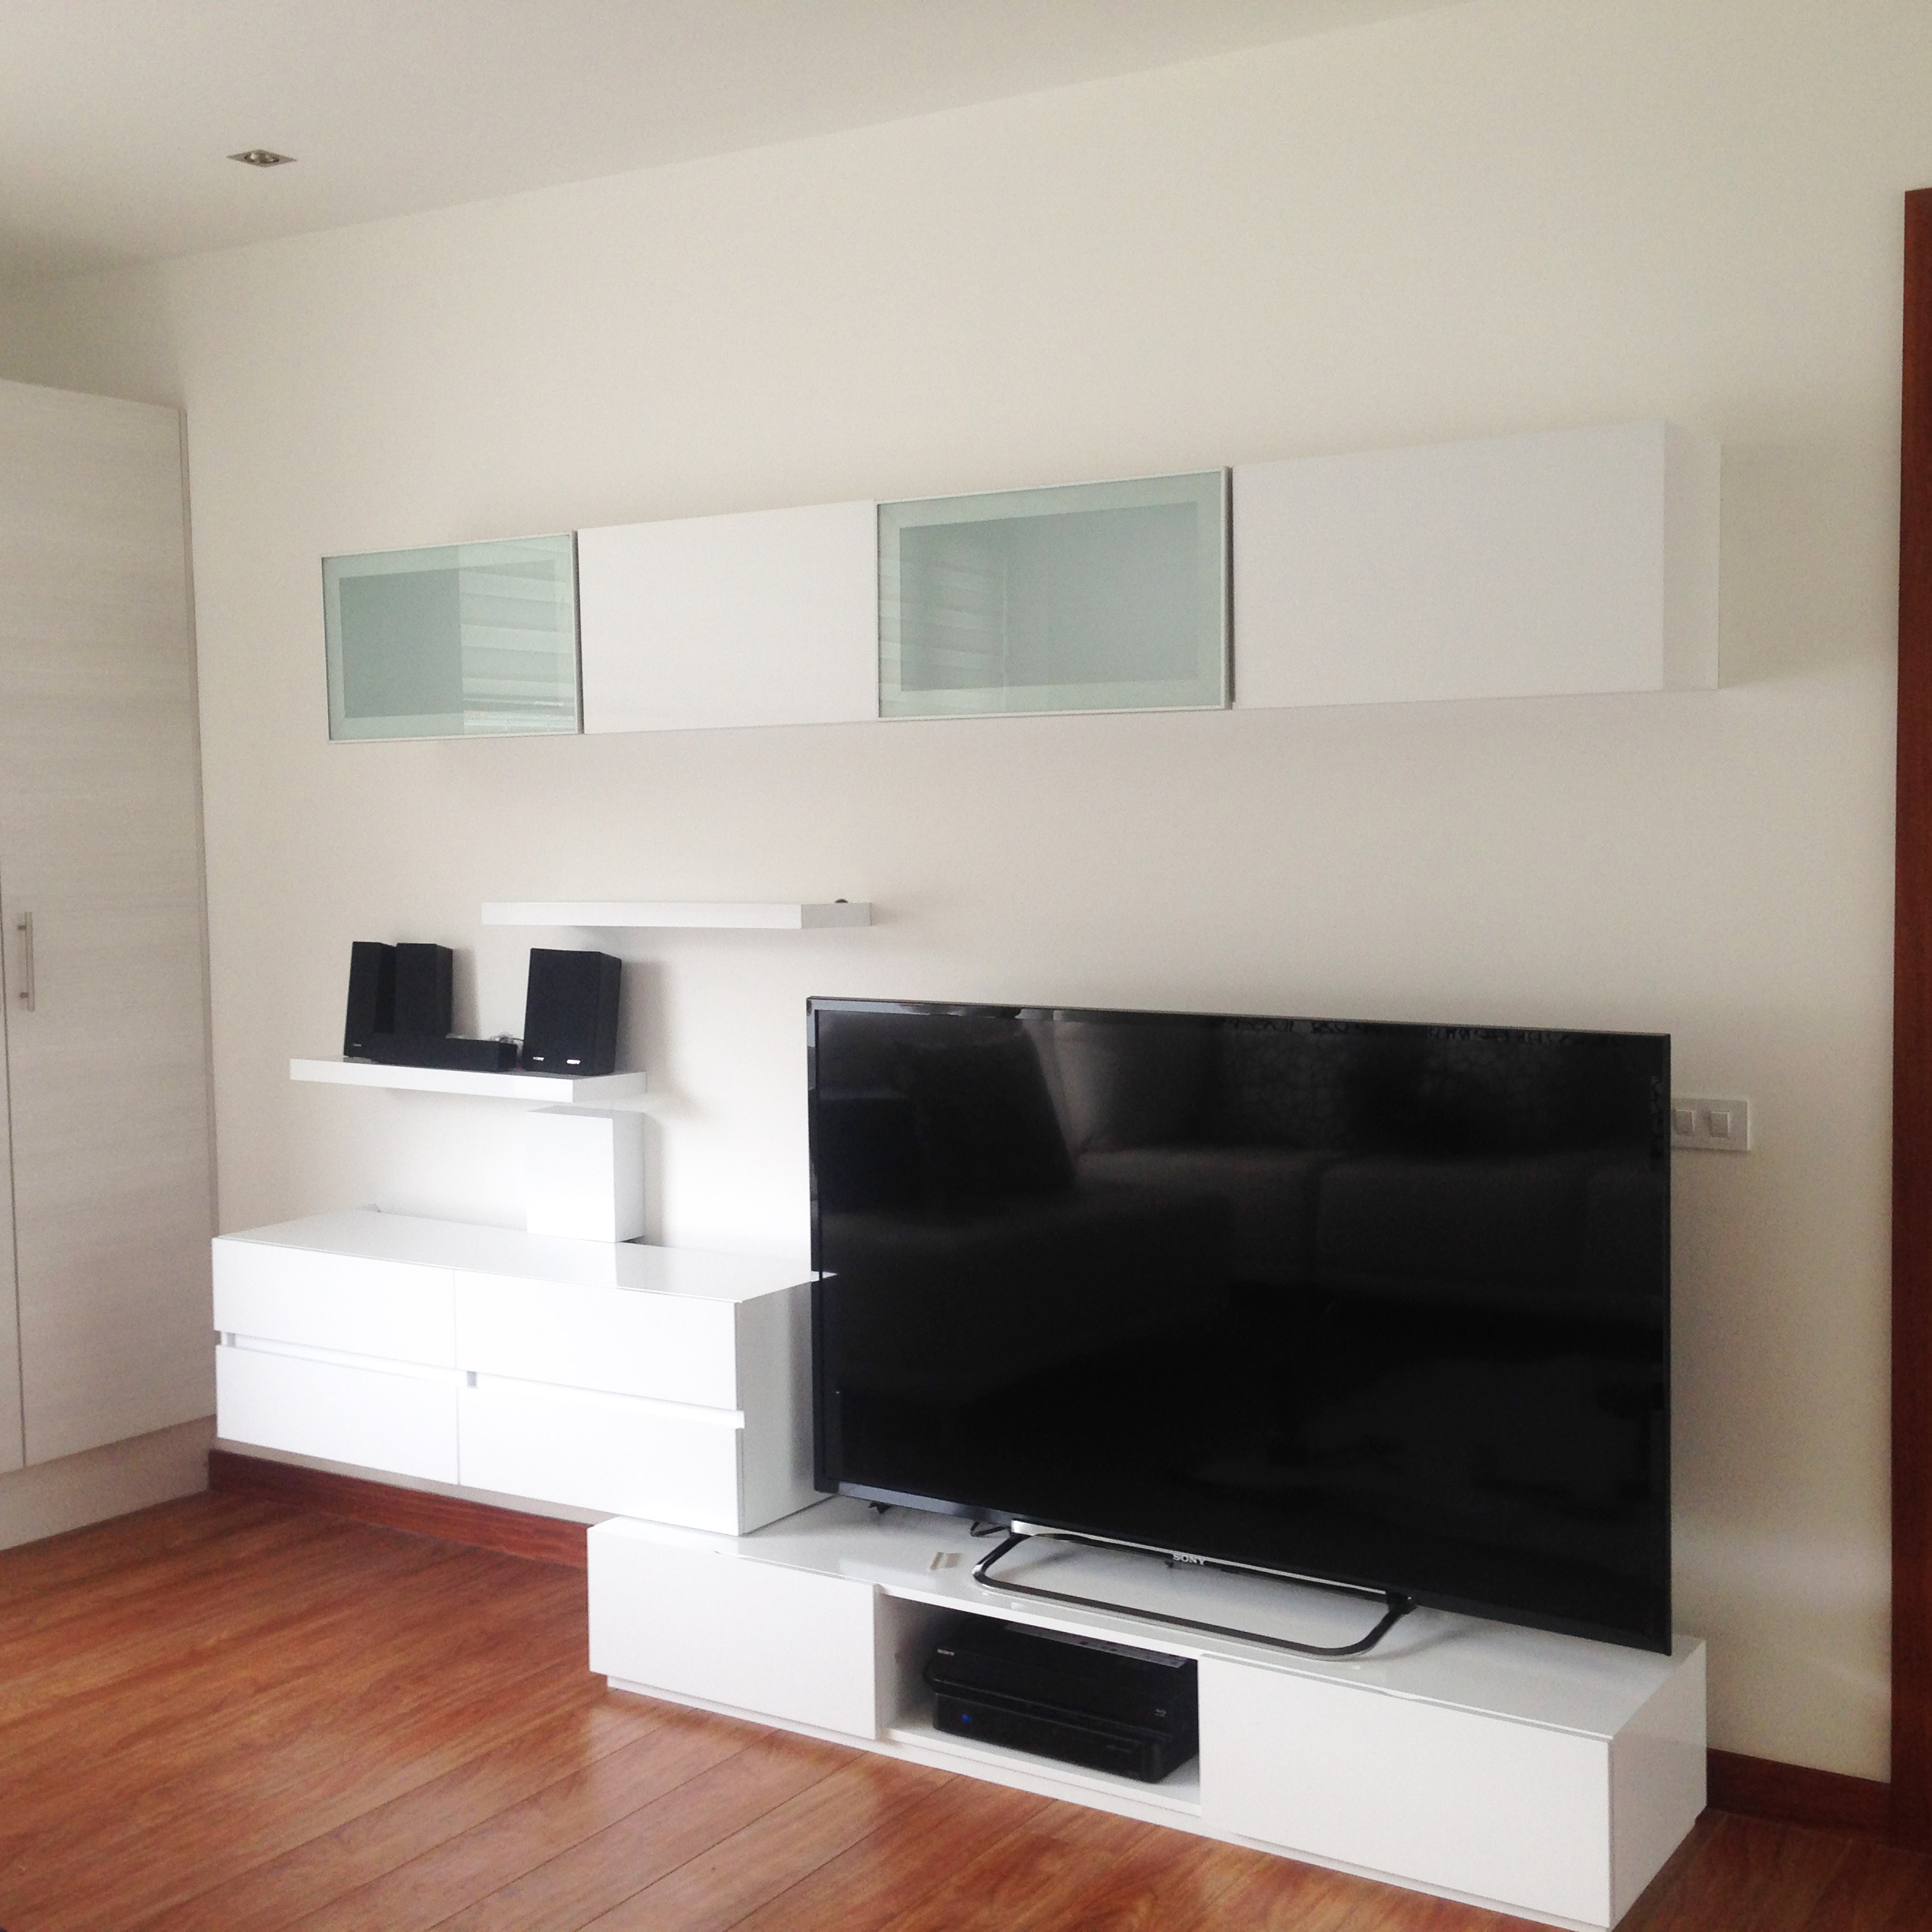 Mueble TV estar